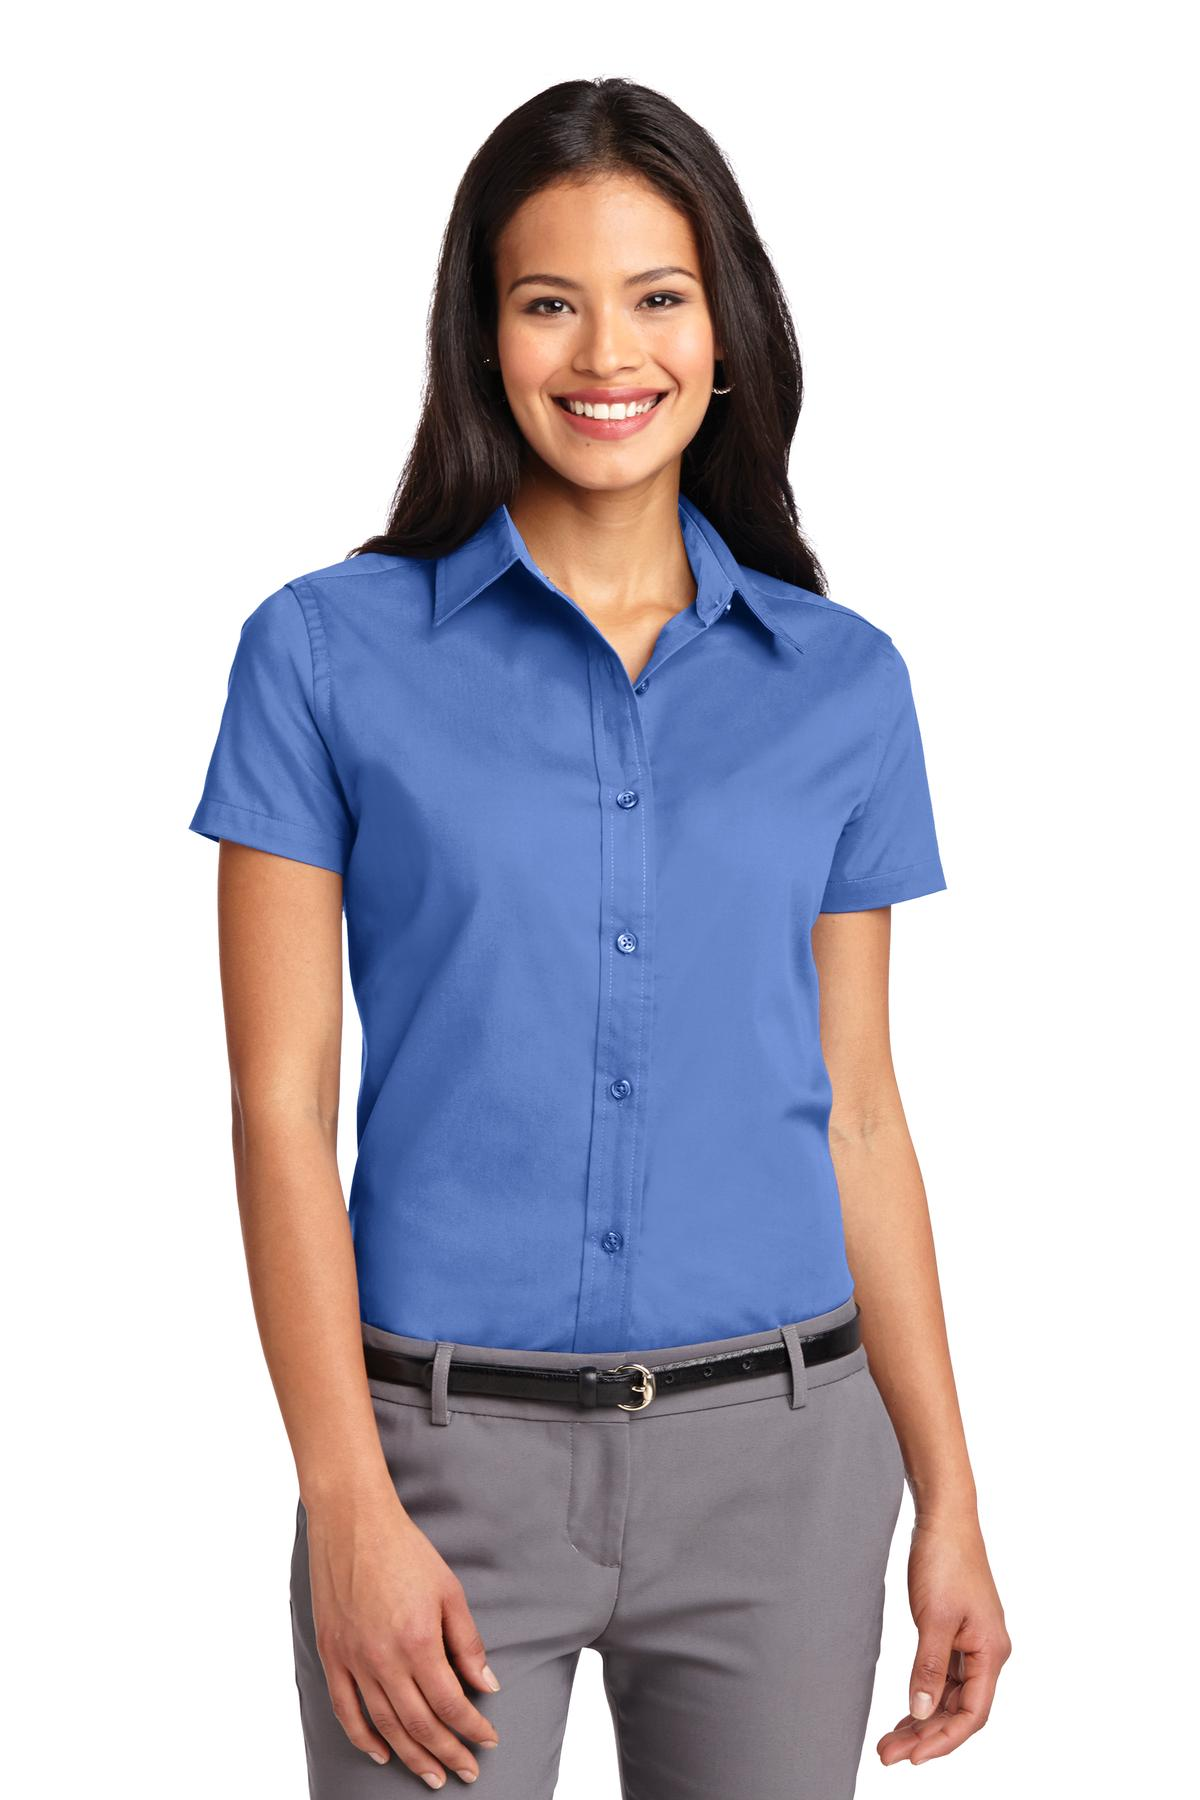 Woven-Shirts-Easy-Care-2